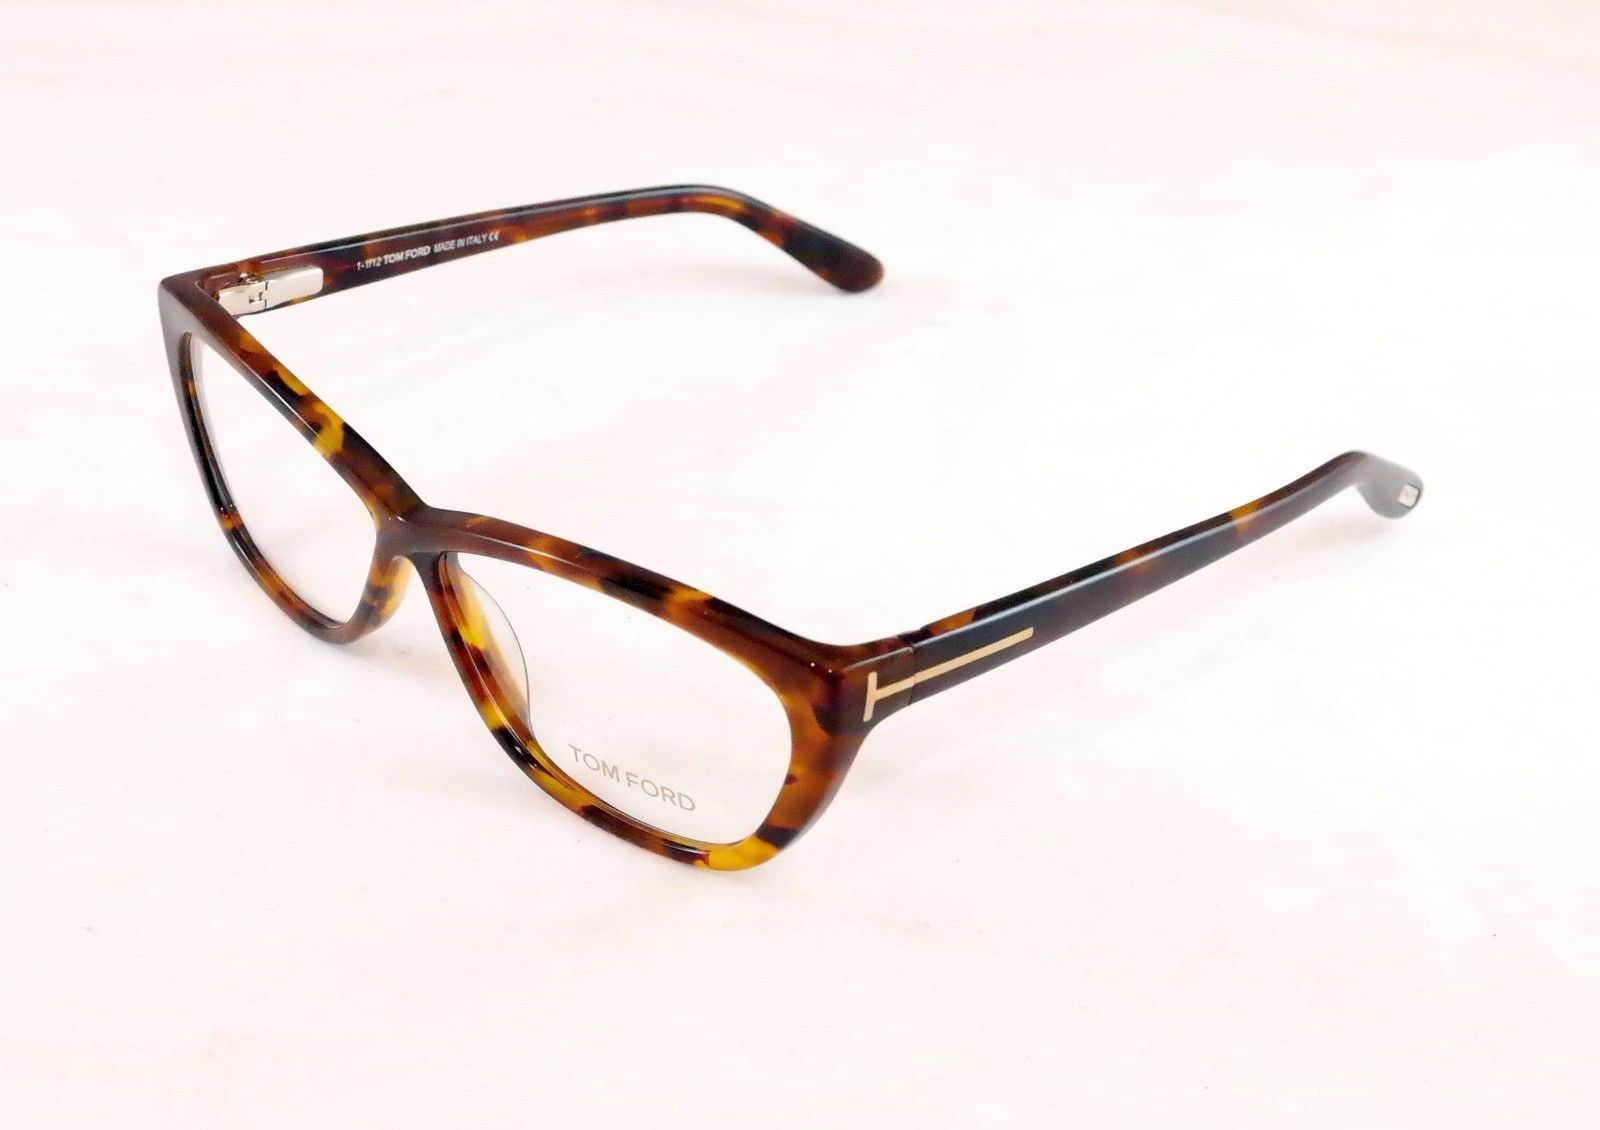 c1c40cf2a8a7d Authentic New Tom Ford Eyeglasses Frame and 50 similar items. S l1600